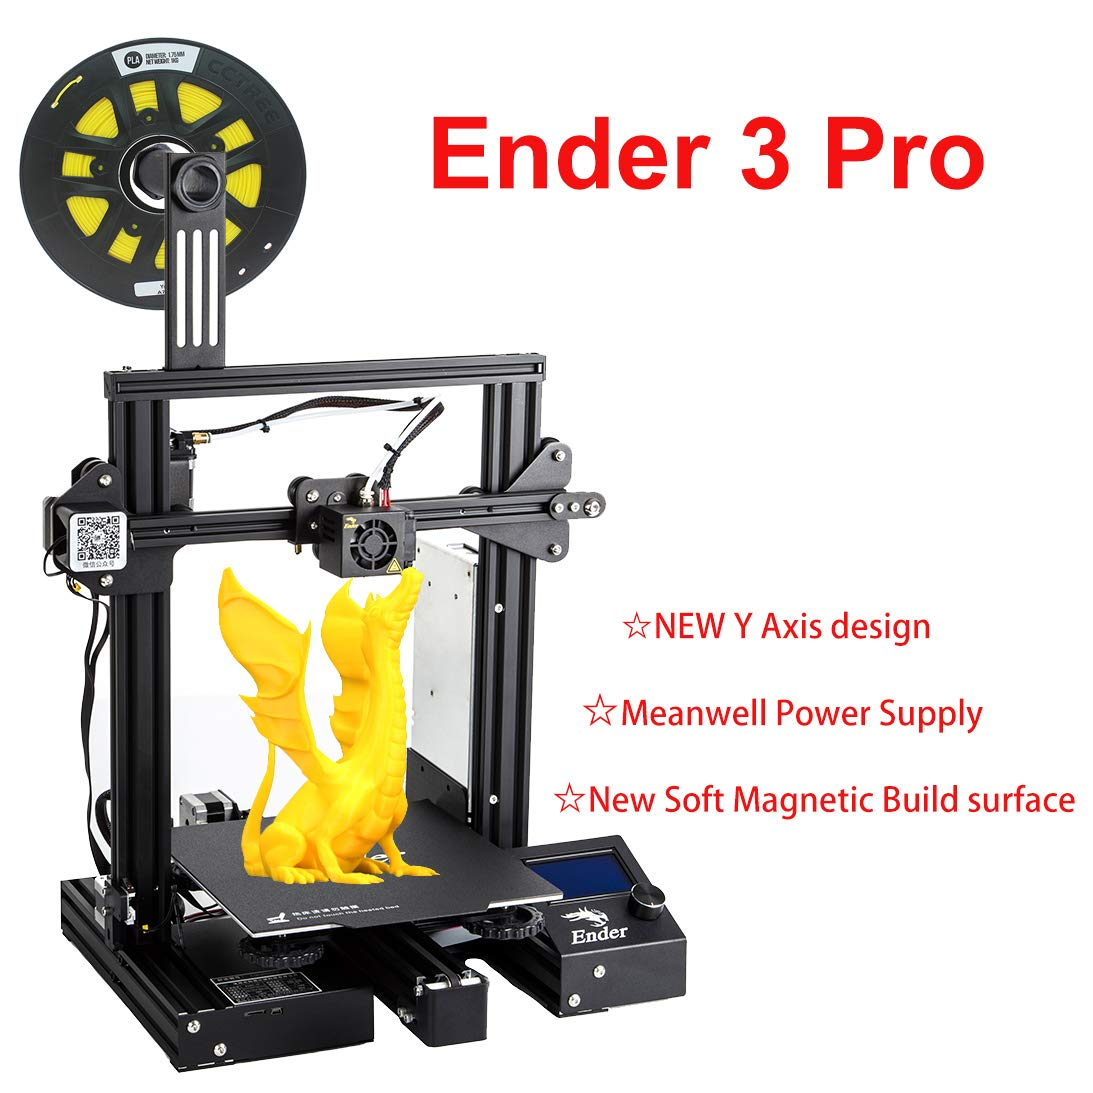 CCTREE Creality Ender 3 Pro 3D Printer with Upgrade Cmagnet Build Surface Plate and MeanWell Power Supply 220x220x250mm Creality 3D